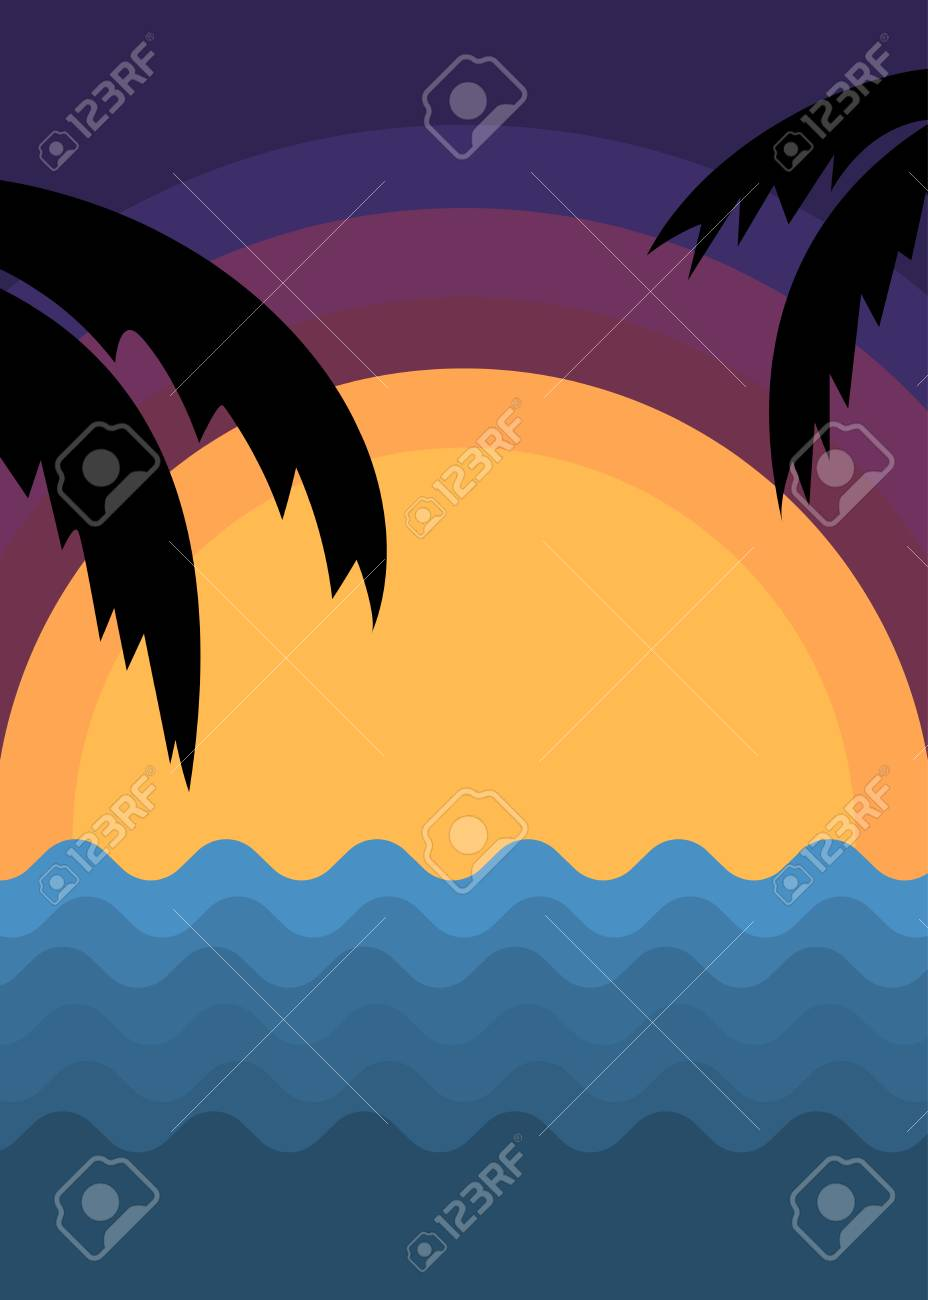 summer poster template with sunset and ocean waves royalty free